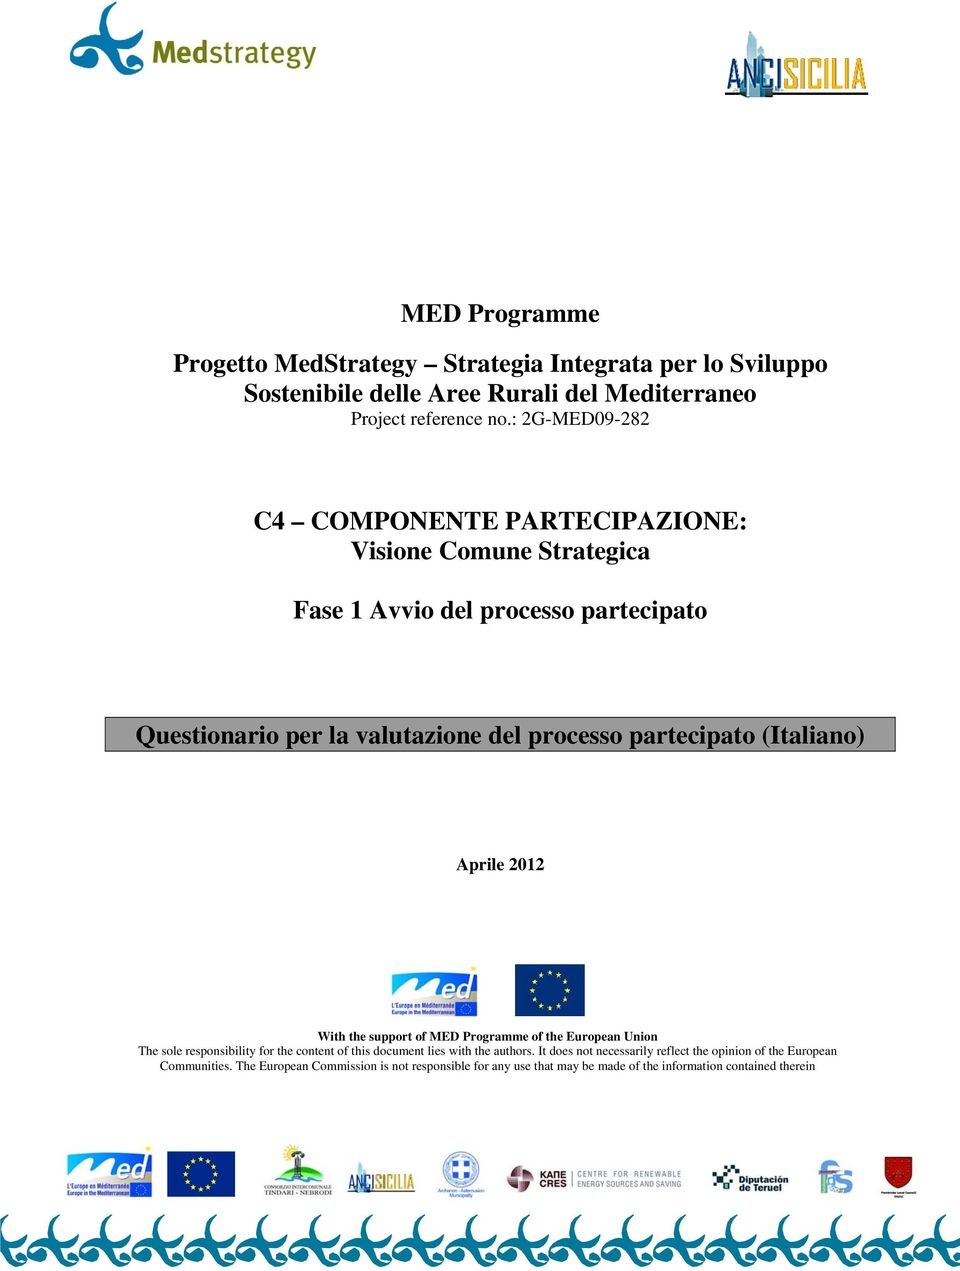 partecipato (Italiano) Aprile 2012 With the support of MED Programme of the European Union The sole responsibility for the content of this document lies with